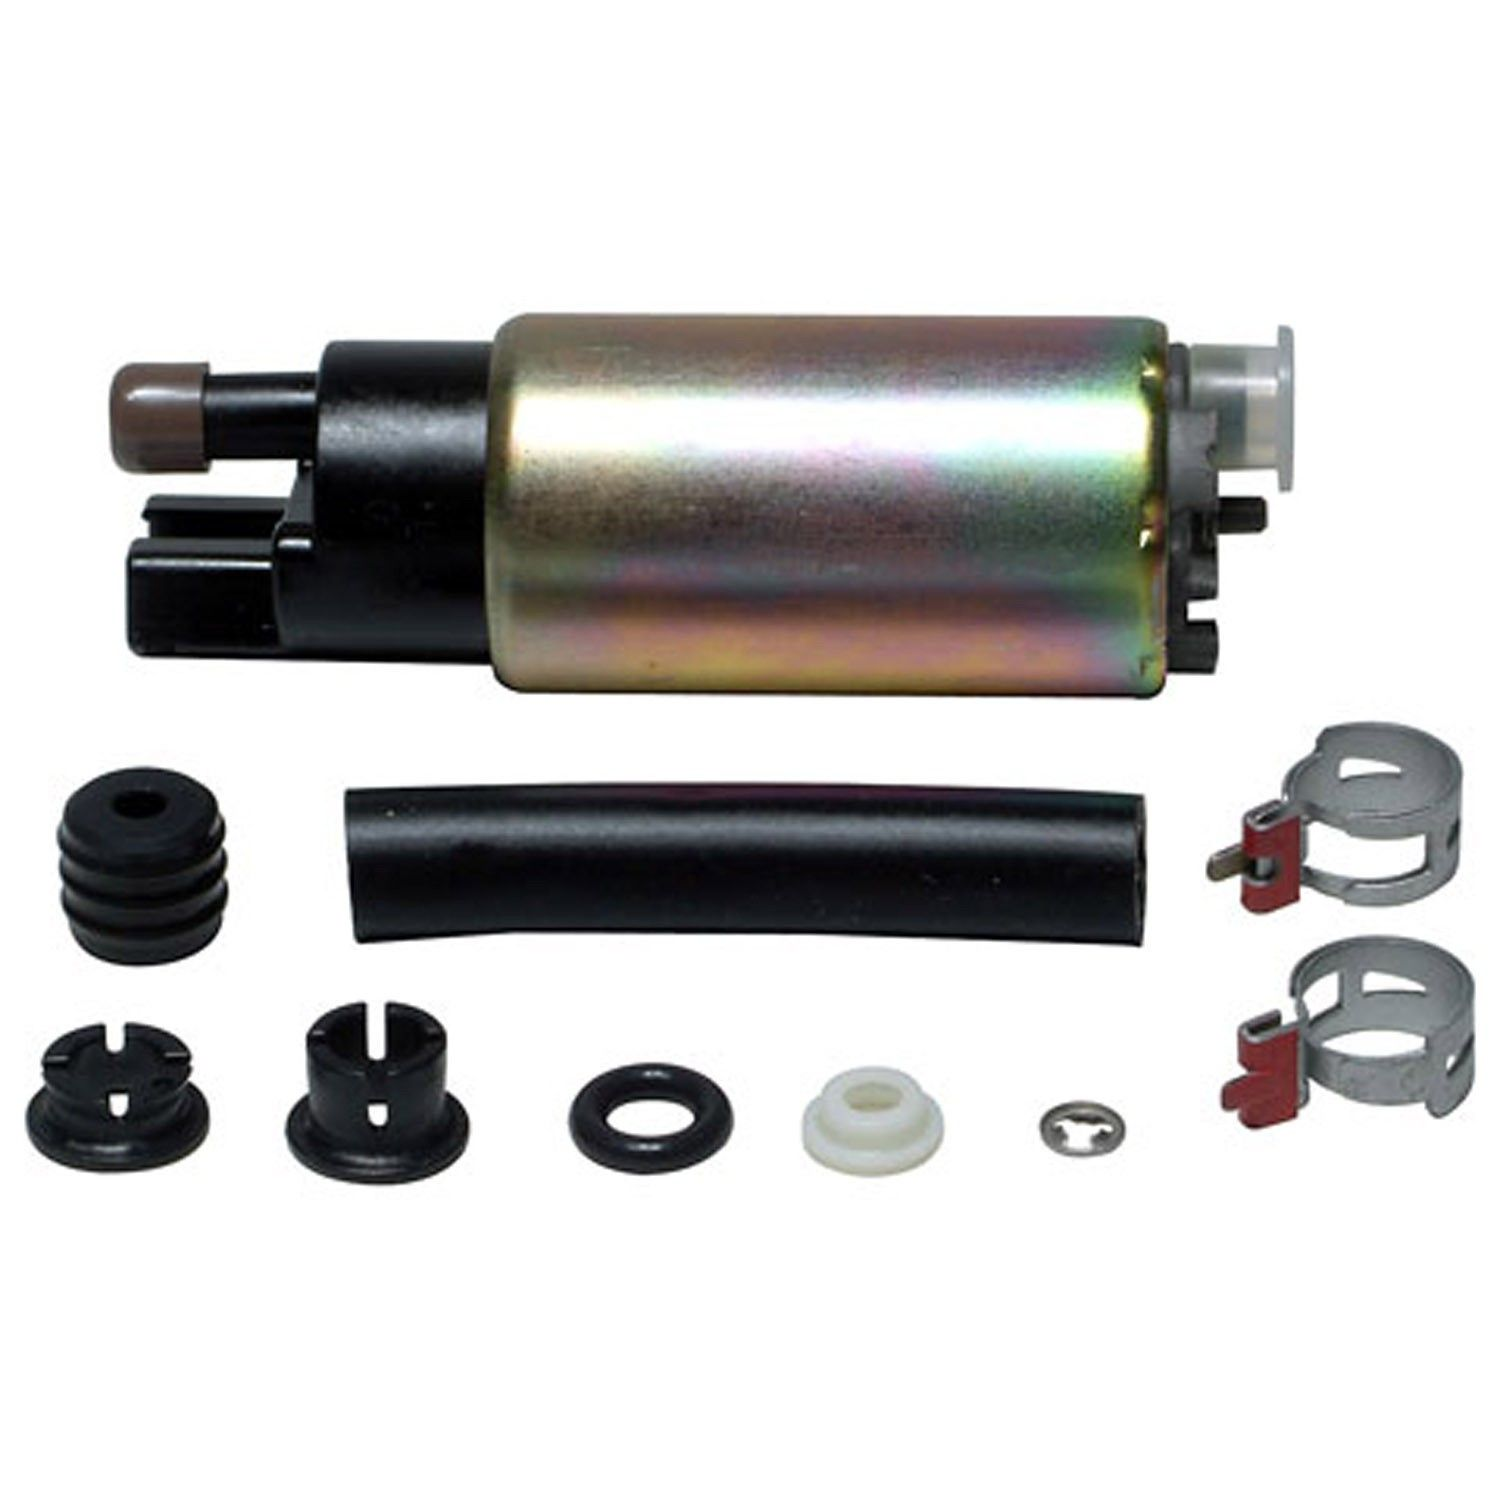 Honda Accord Electric Fuel Pump Replacement Airtex Autobest Beck 2003 Location 1994 4 Cyl 22l Denso 951 0004 Oe